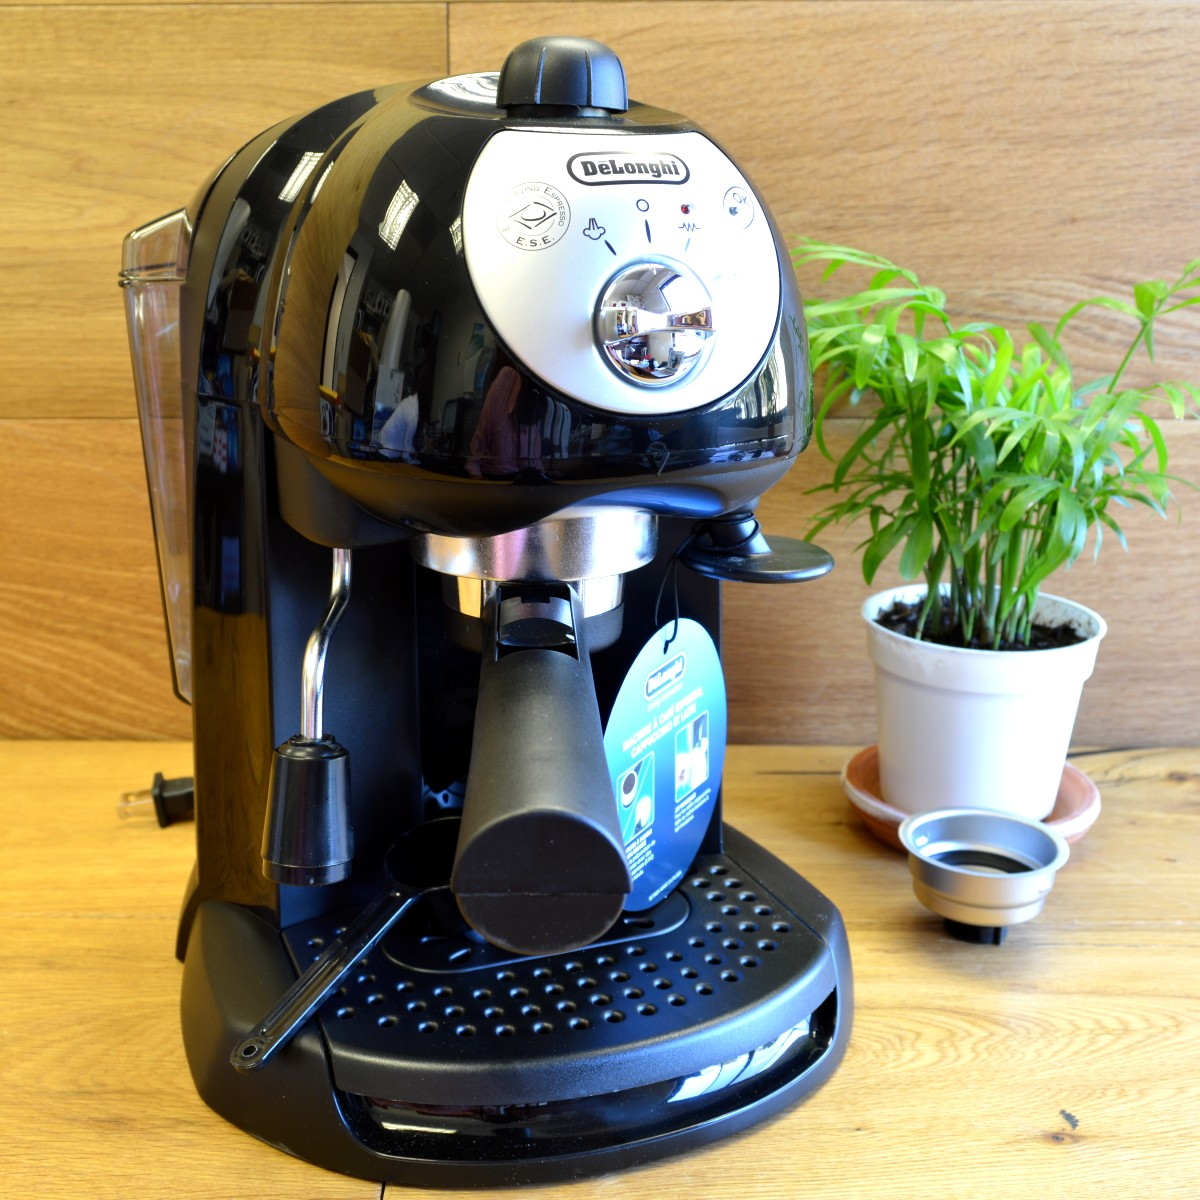 Review: BAR32 - A Delonghi Espresso Maker With Quality